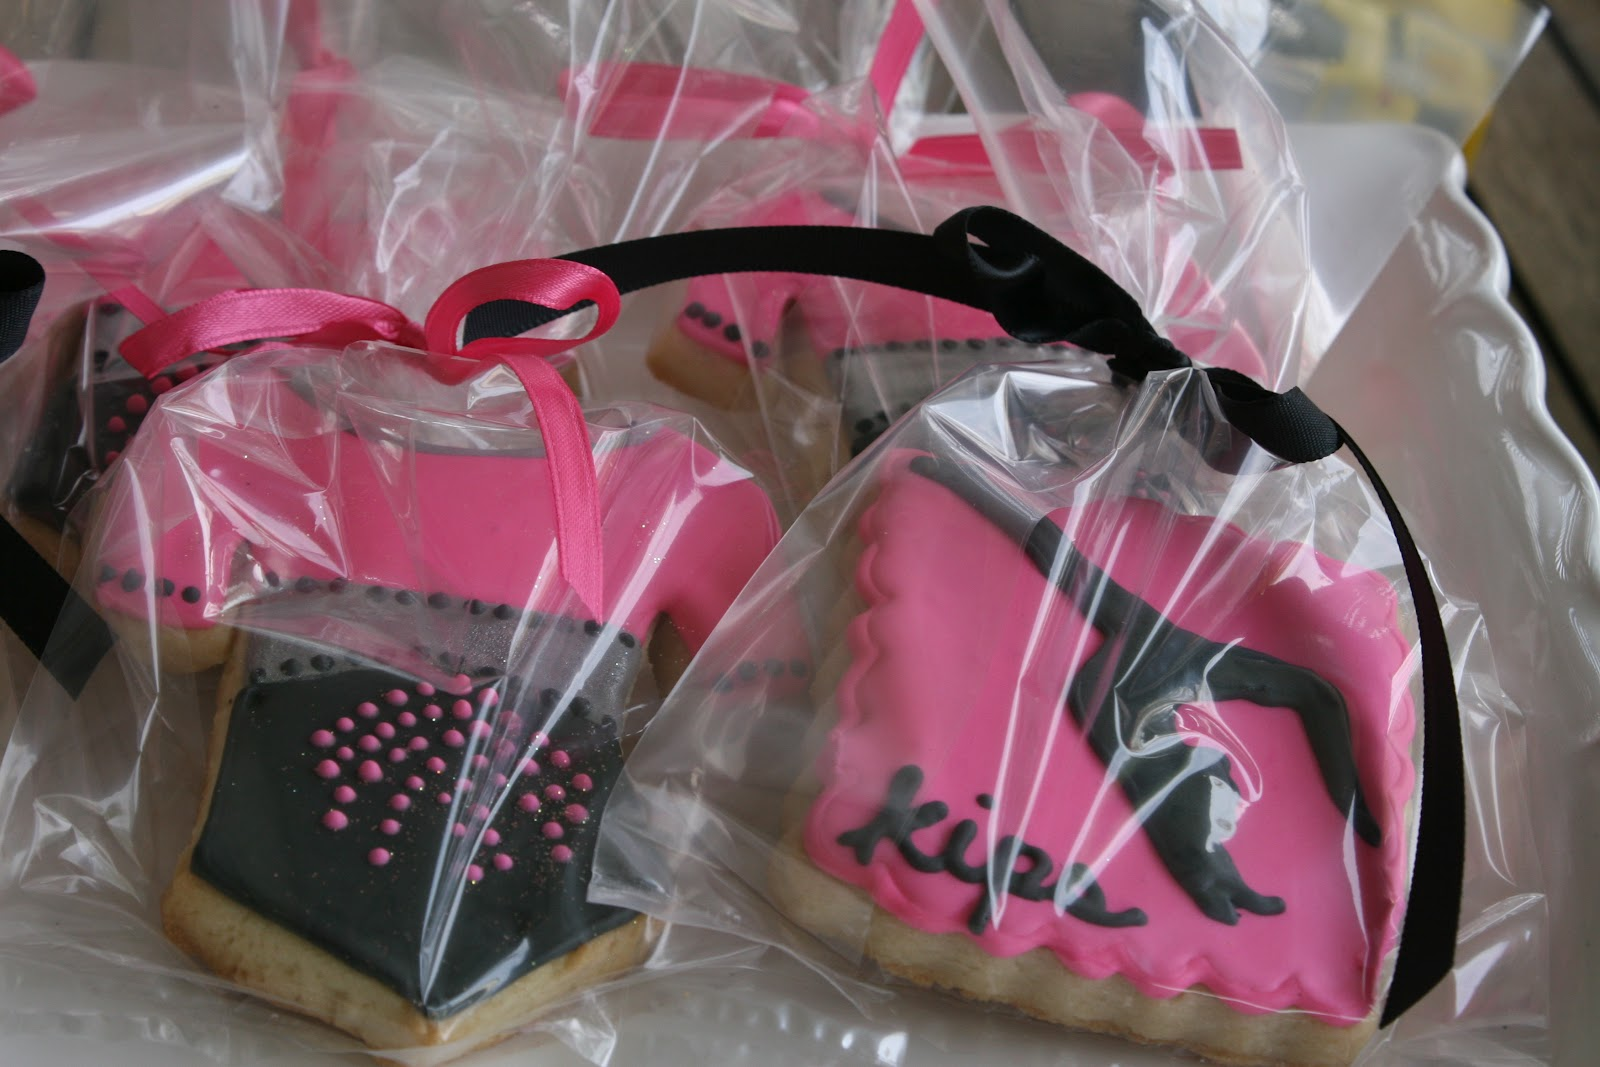 Custom Cookies, Cupcakes and Cake: Contact & Ordering